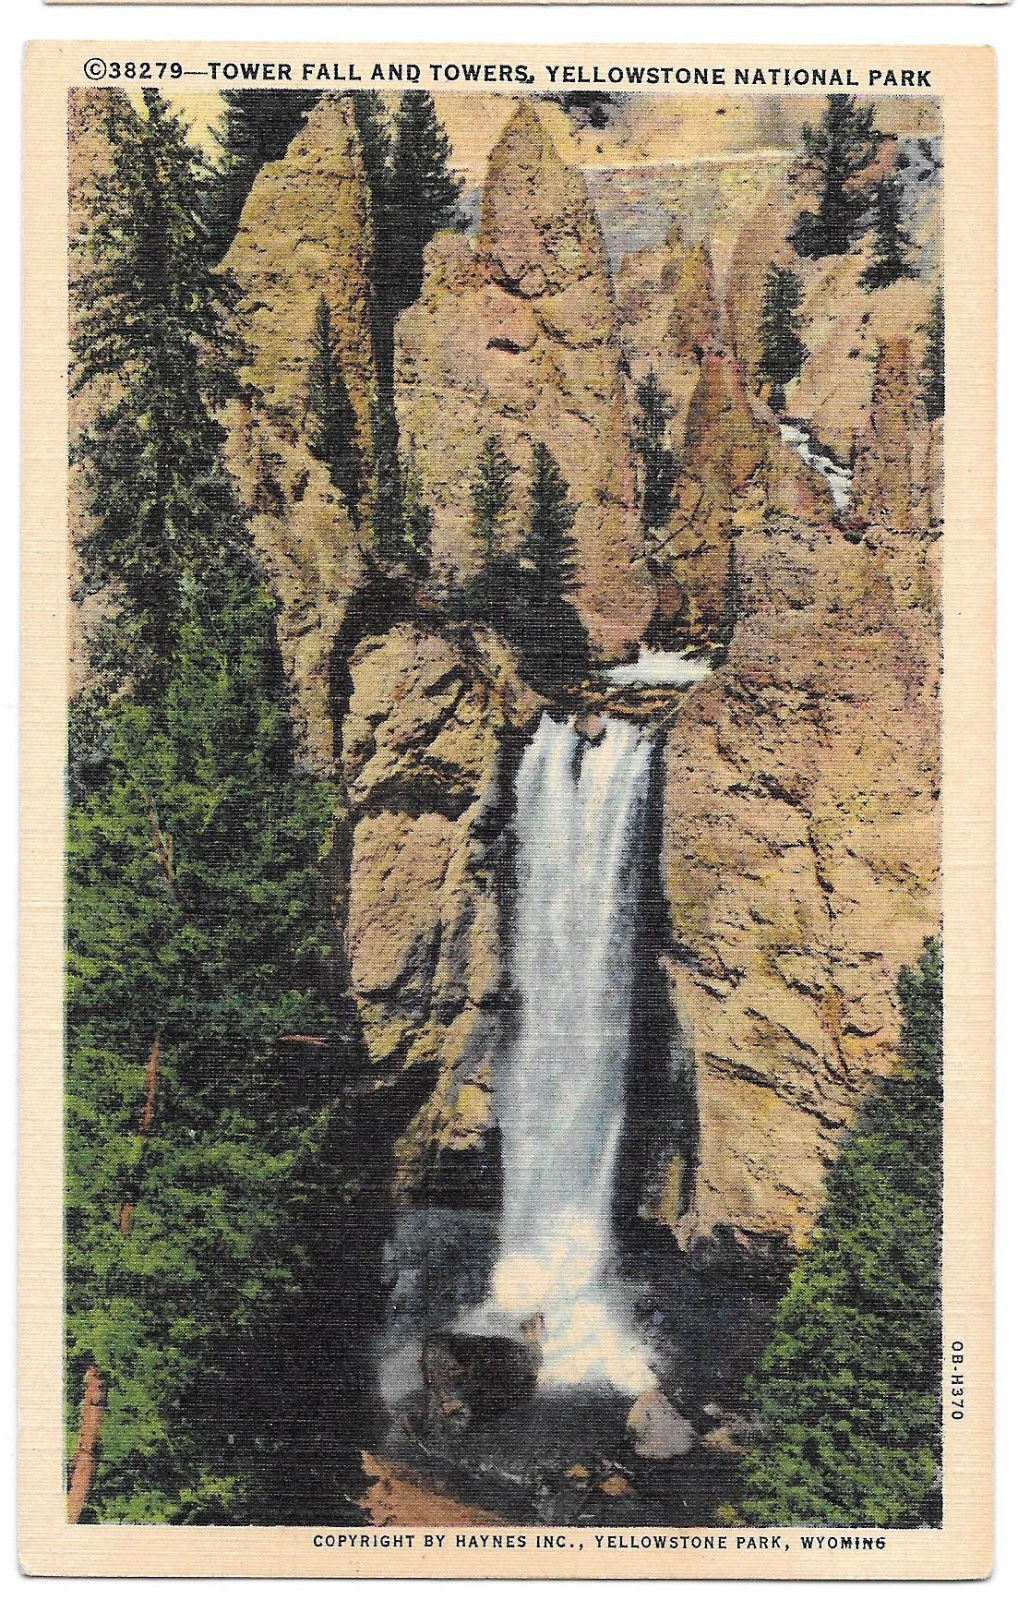 WY Yellowstone Park Tower Fall and Towers Vintage Haynes Linen Postcard